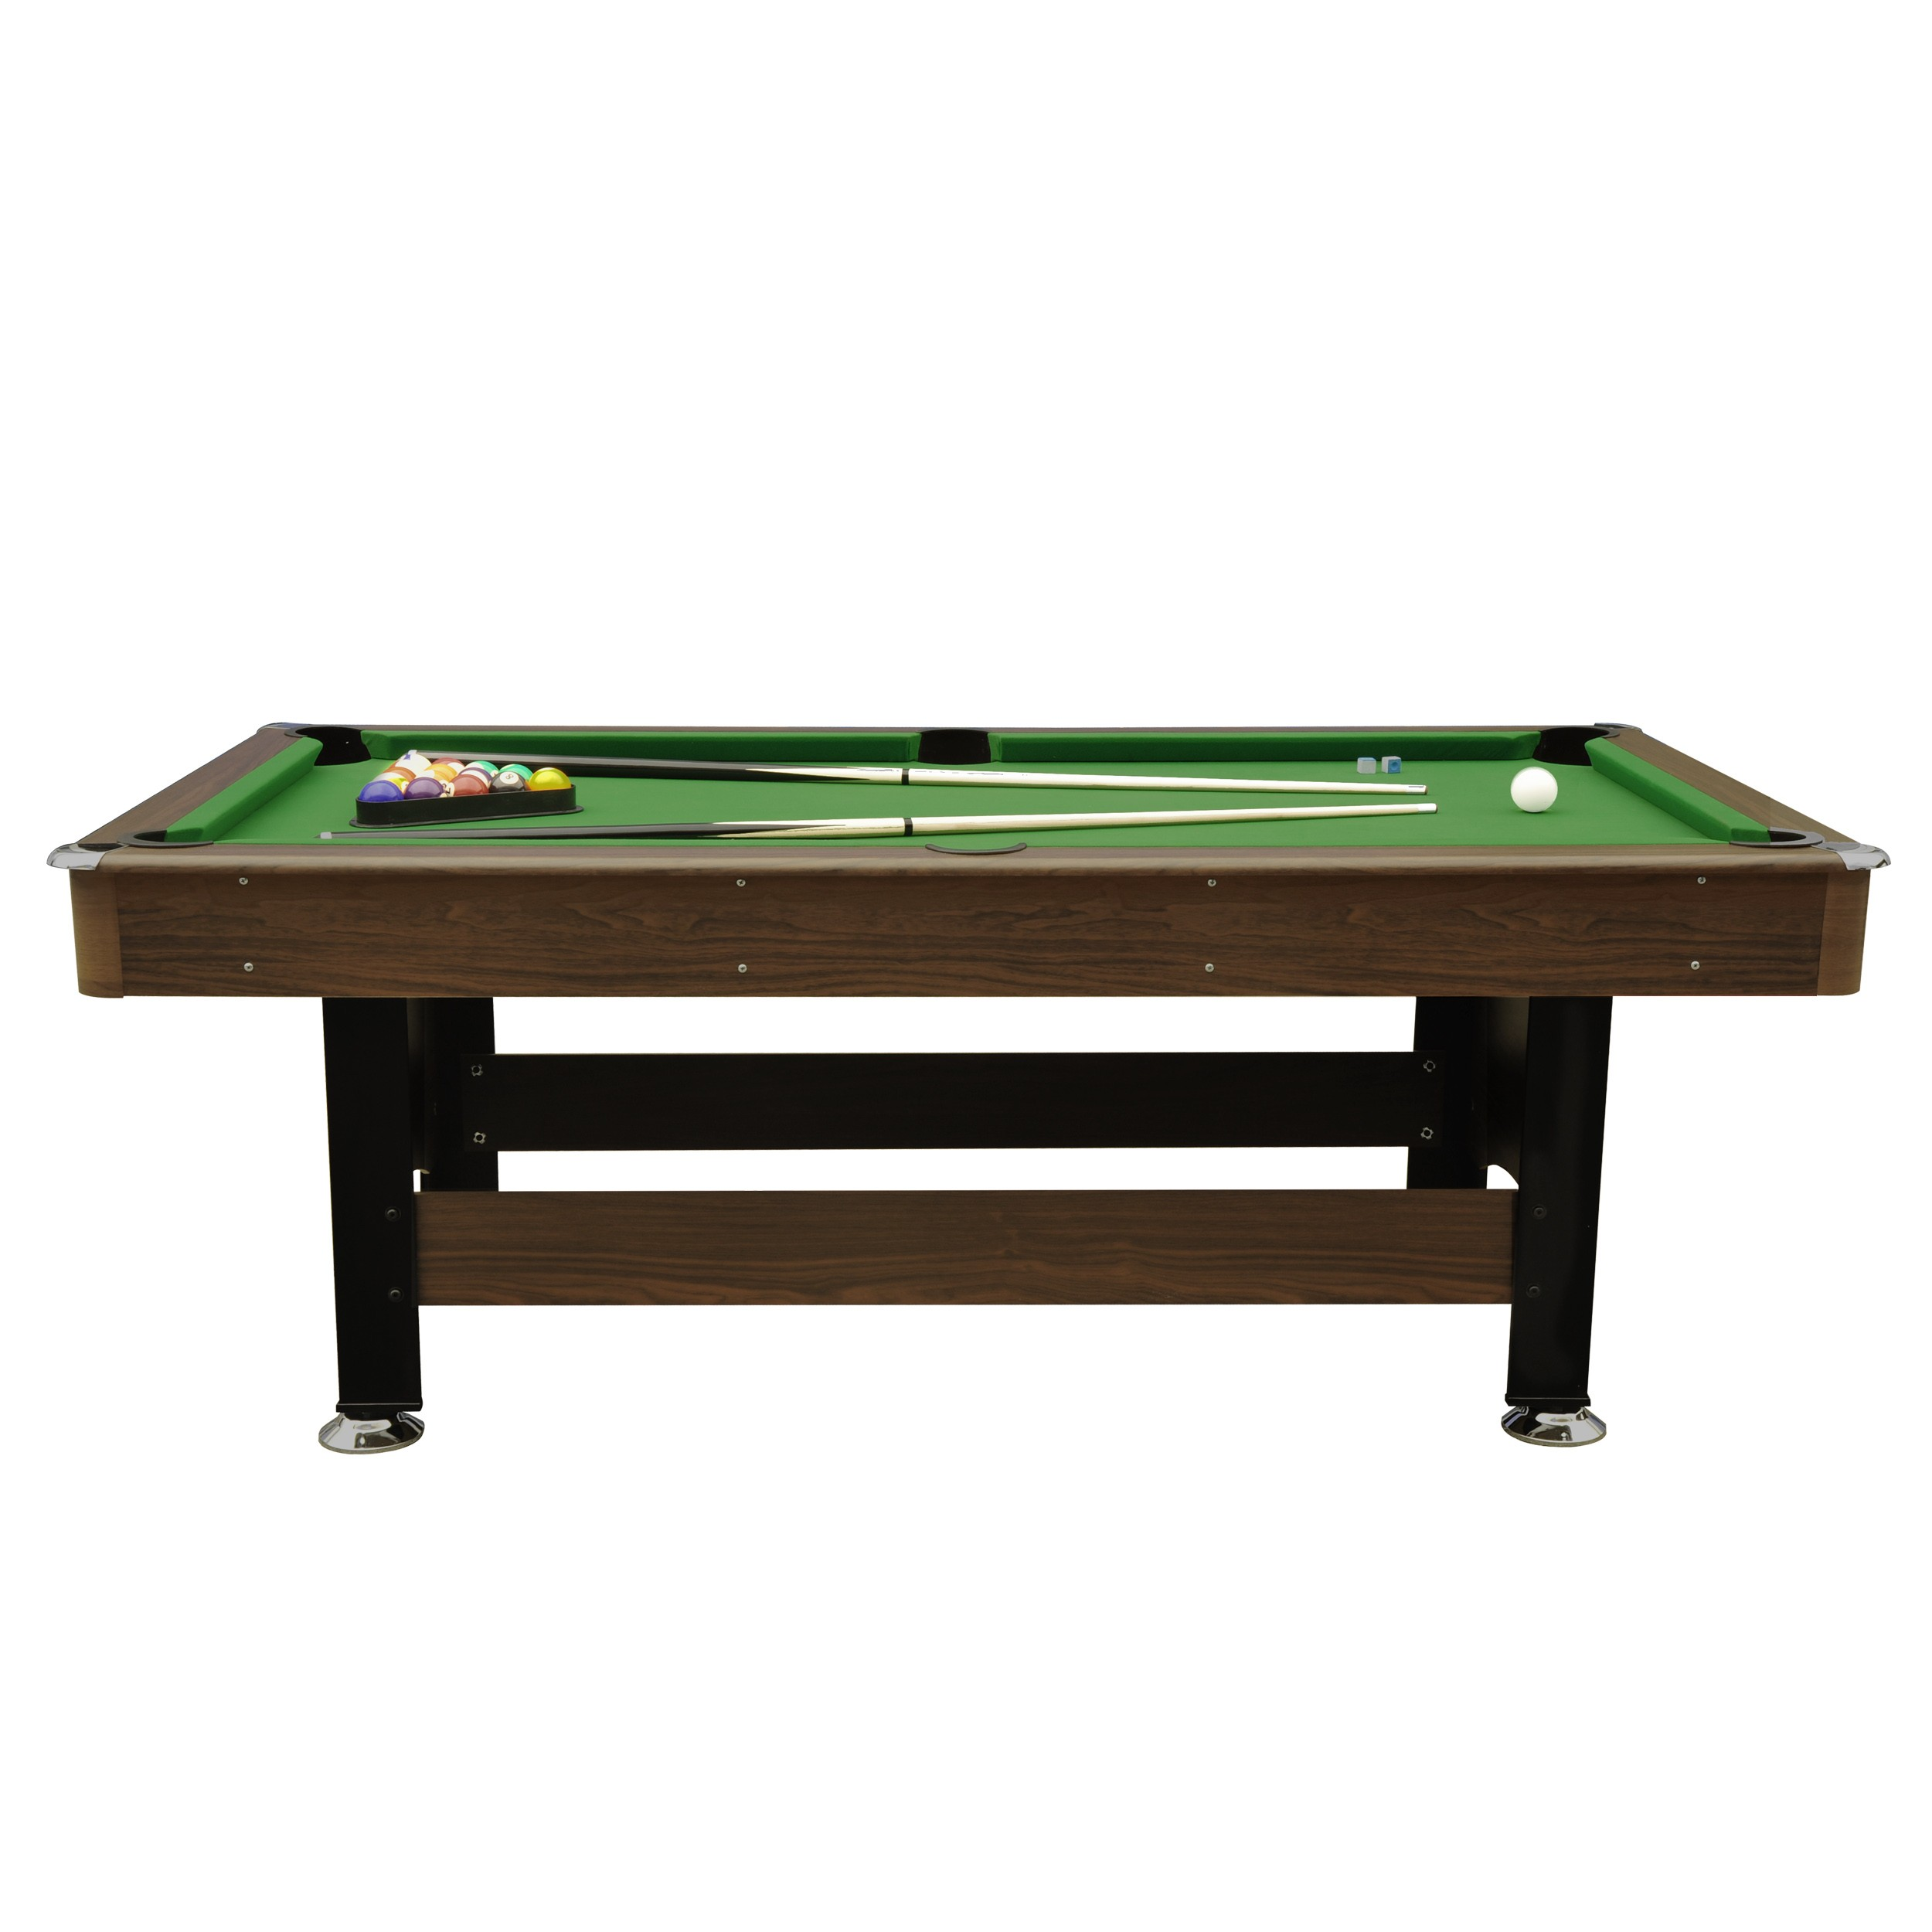 billard newcastle 6 8ft bois fonc achetez nos billards newcastle 6 8ft bois fonc rdv d co. Black Bedroom Furniture Sets. Home Design Ideas